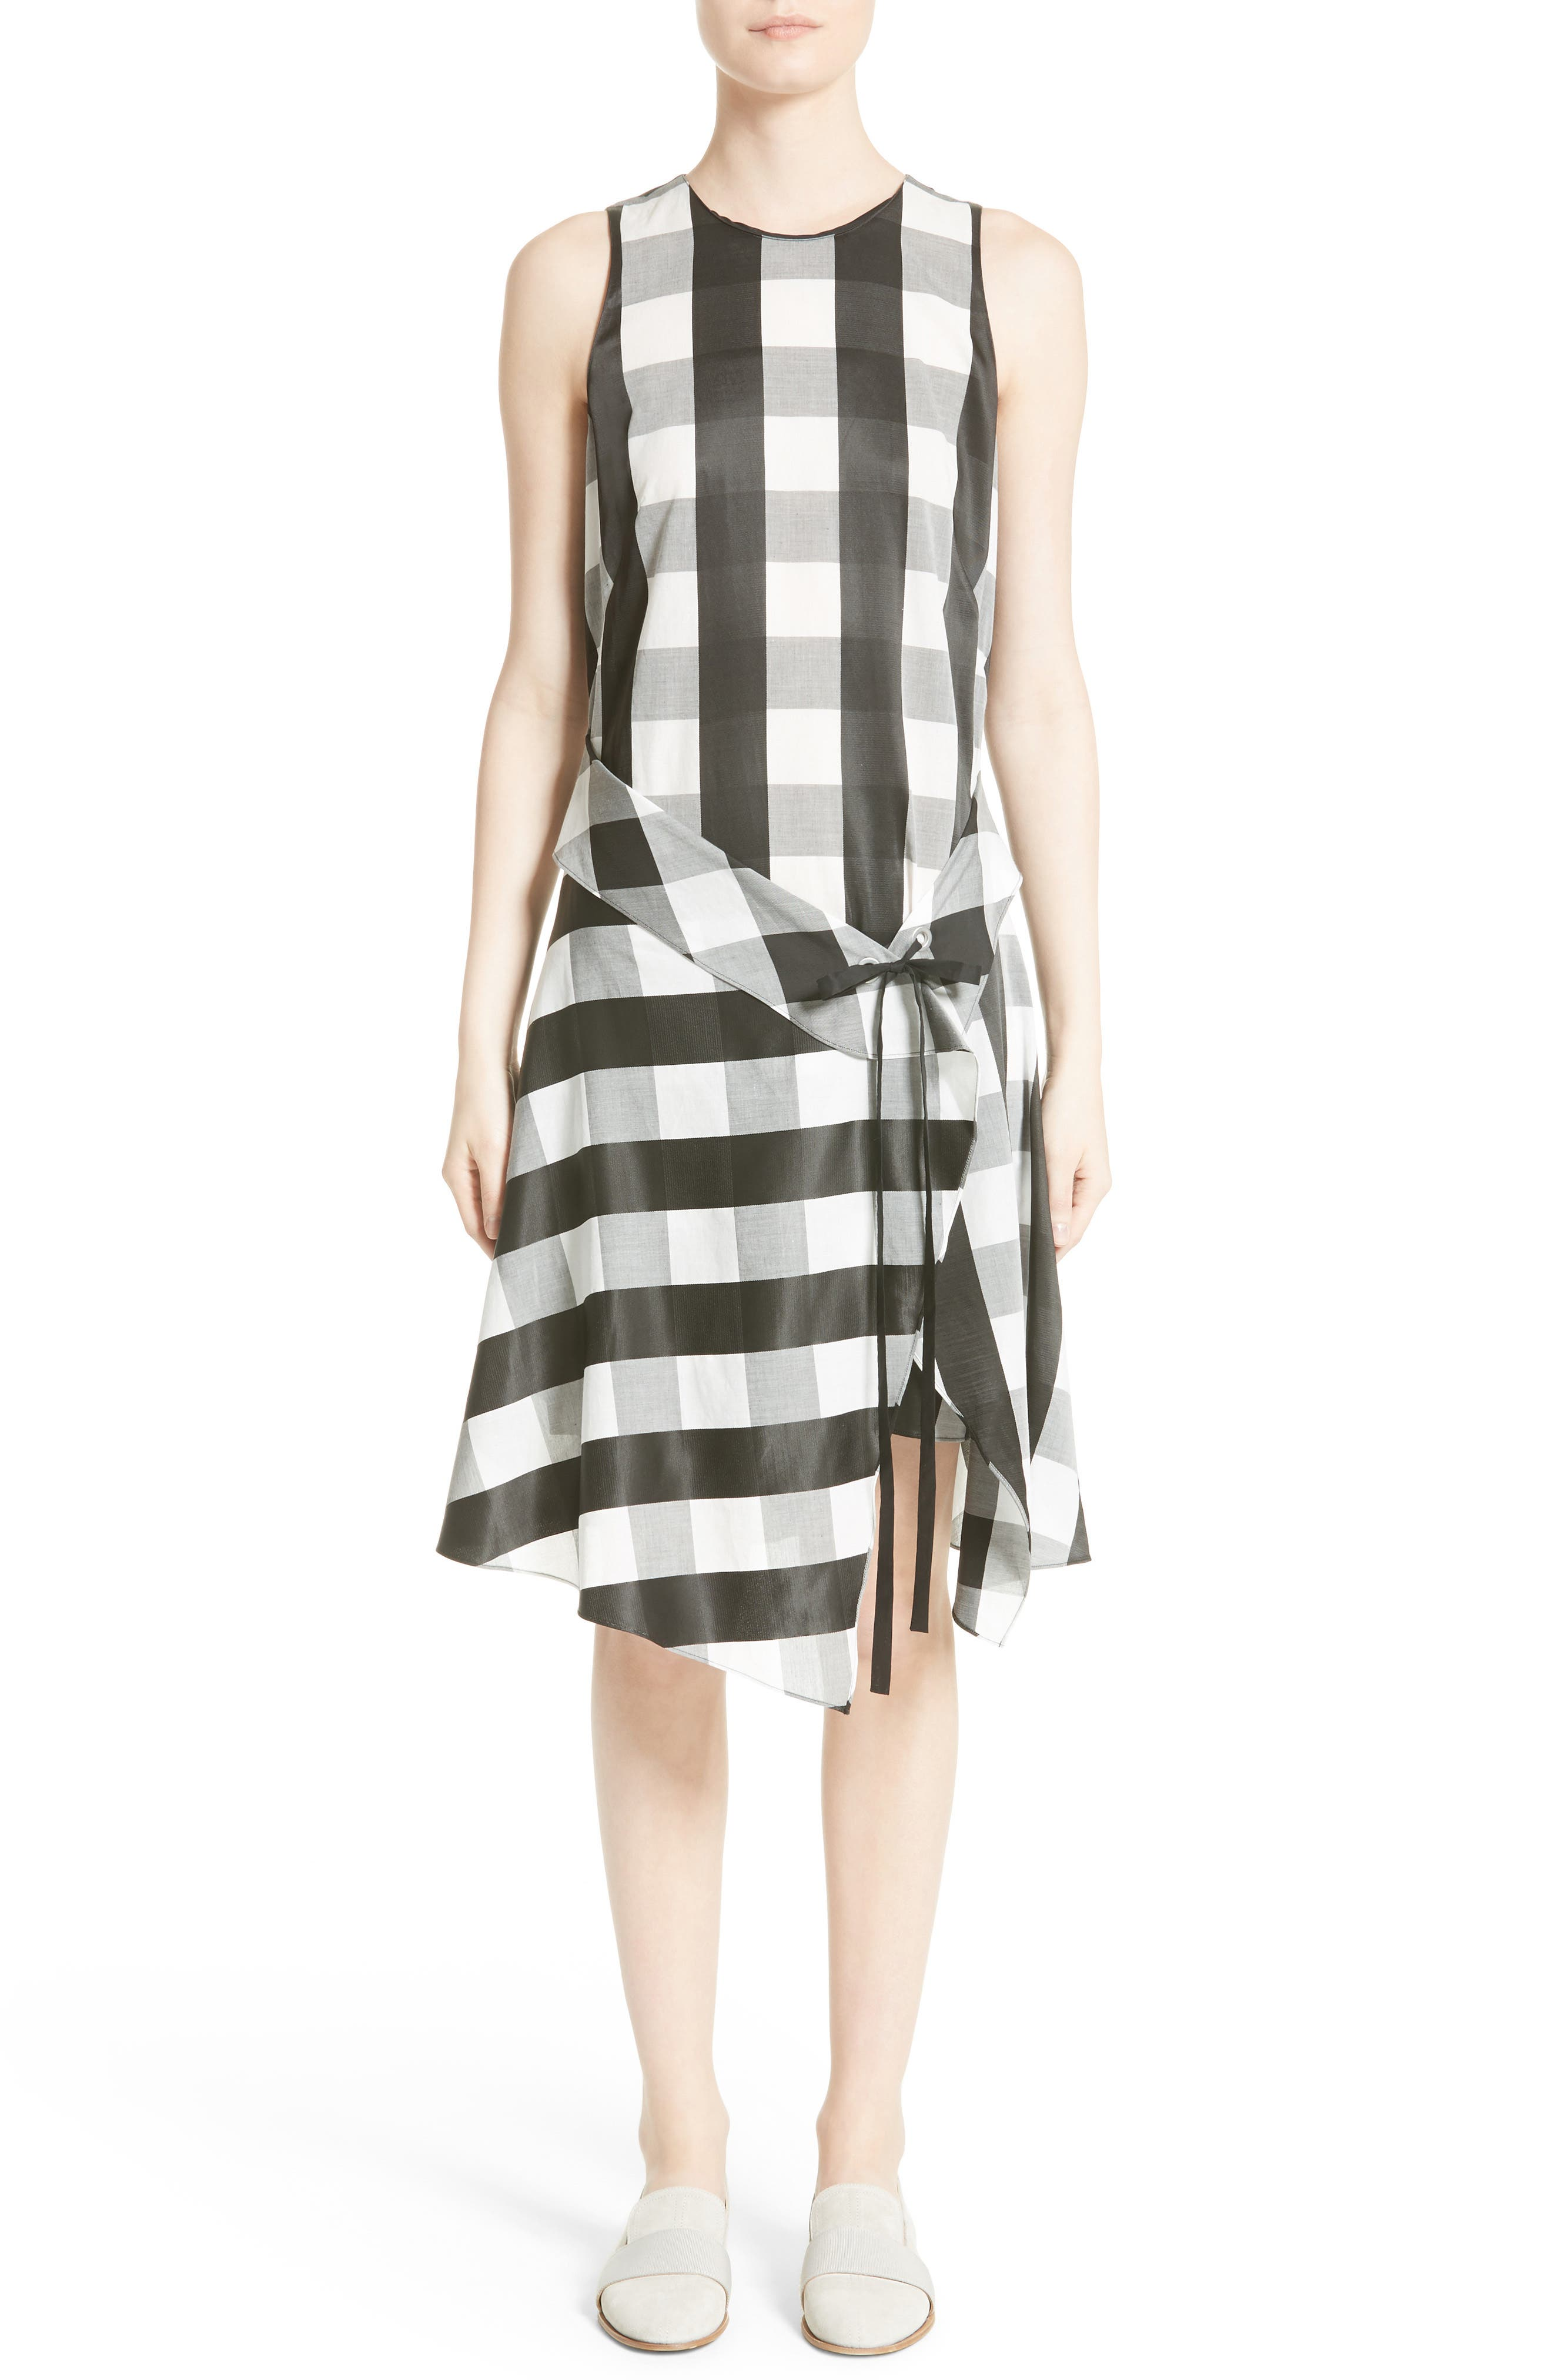 Brighton Asymmetrical Dress,                             Main thumbnail 1, color,                             Black/ White